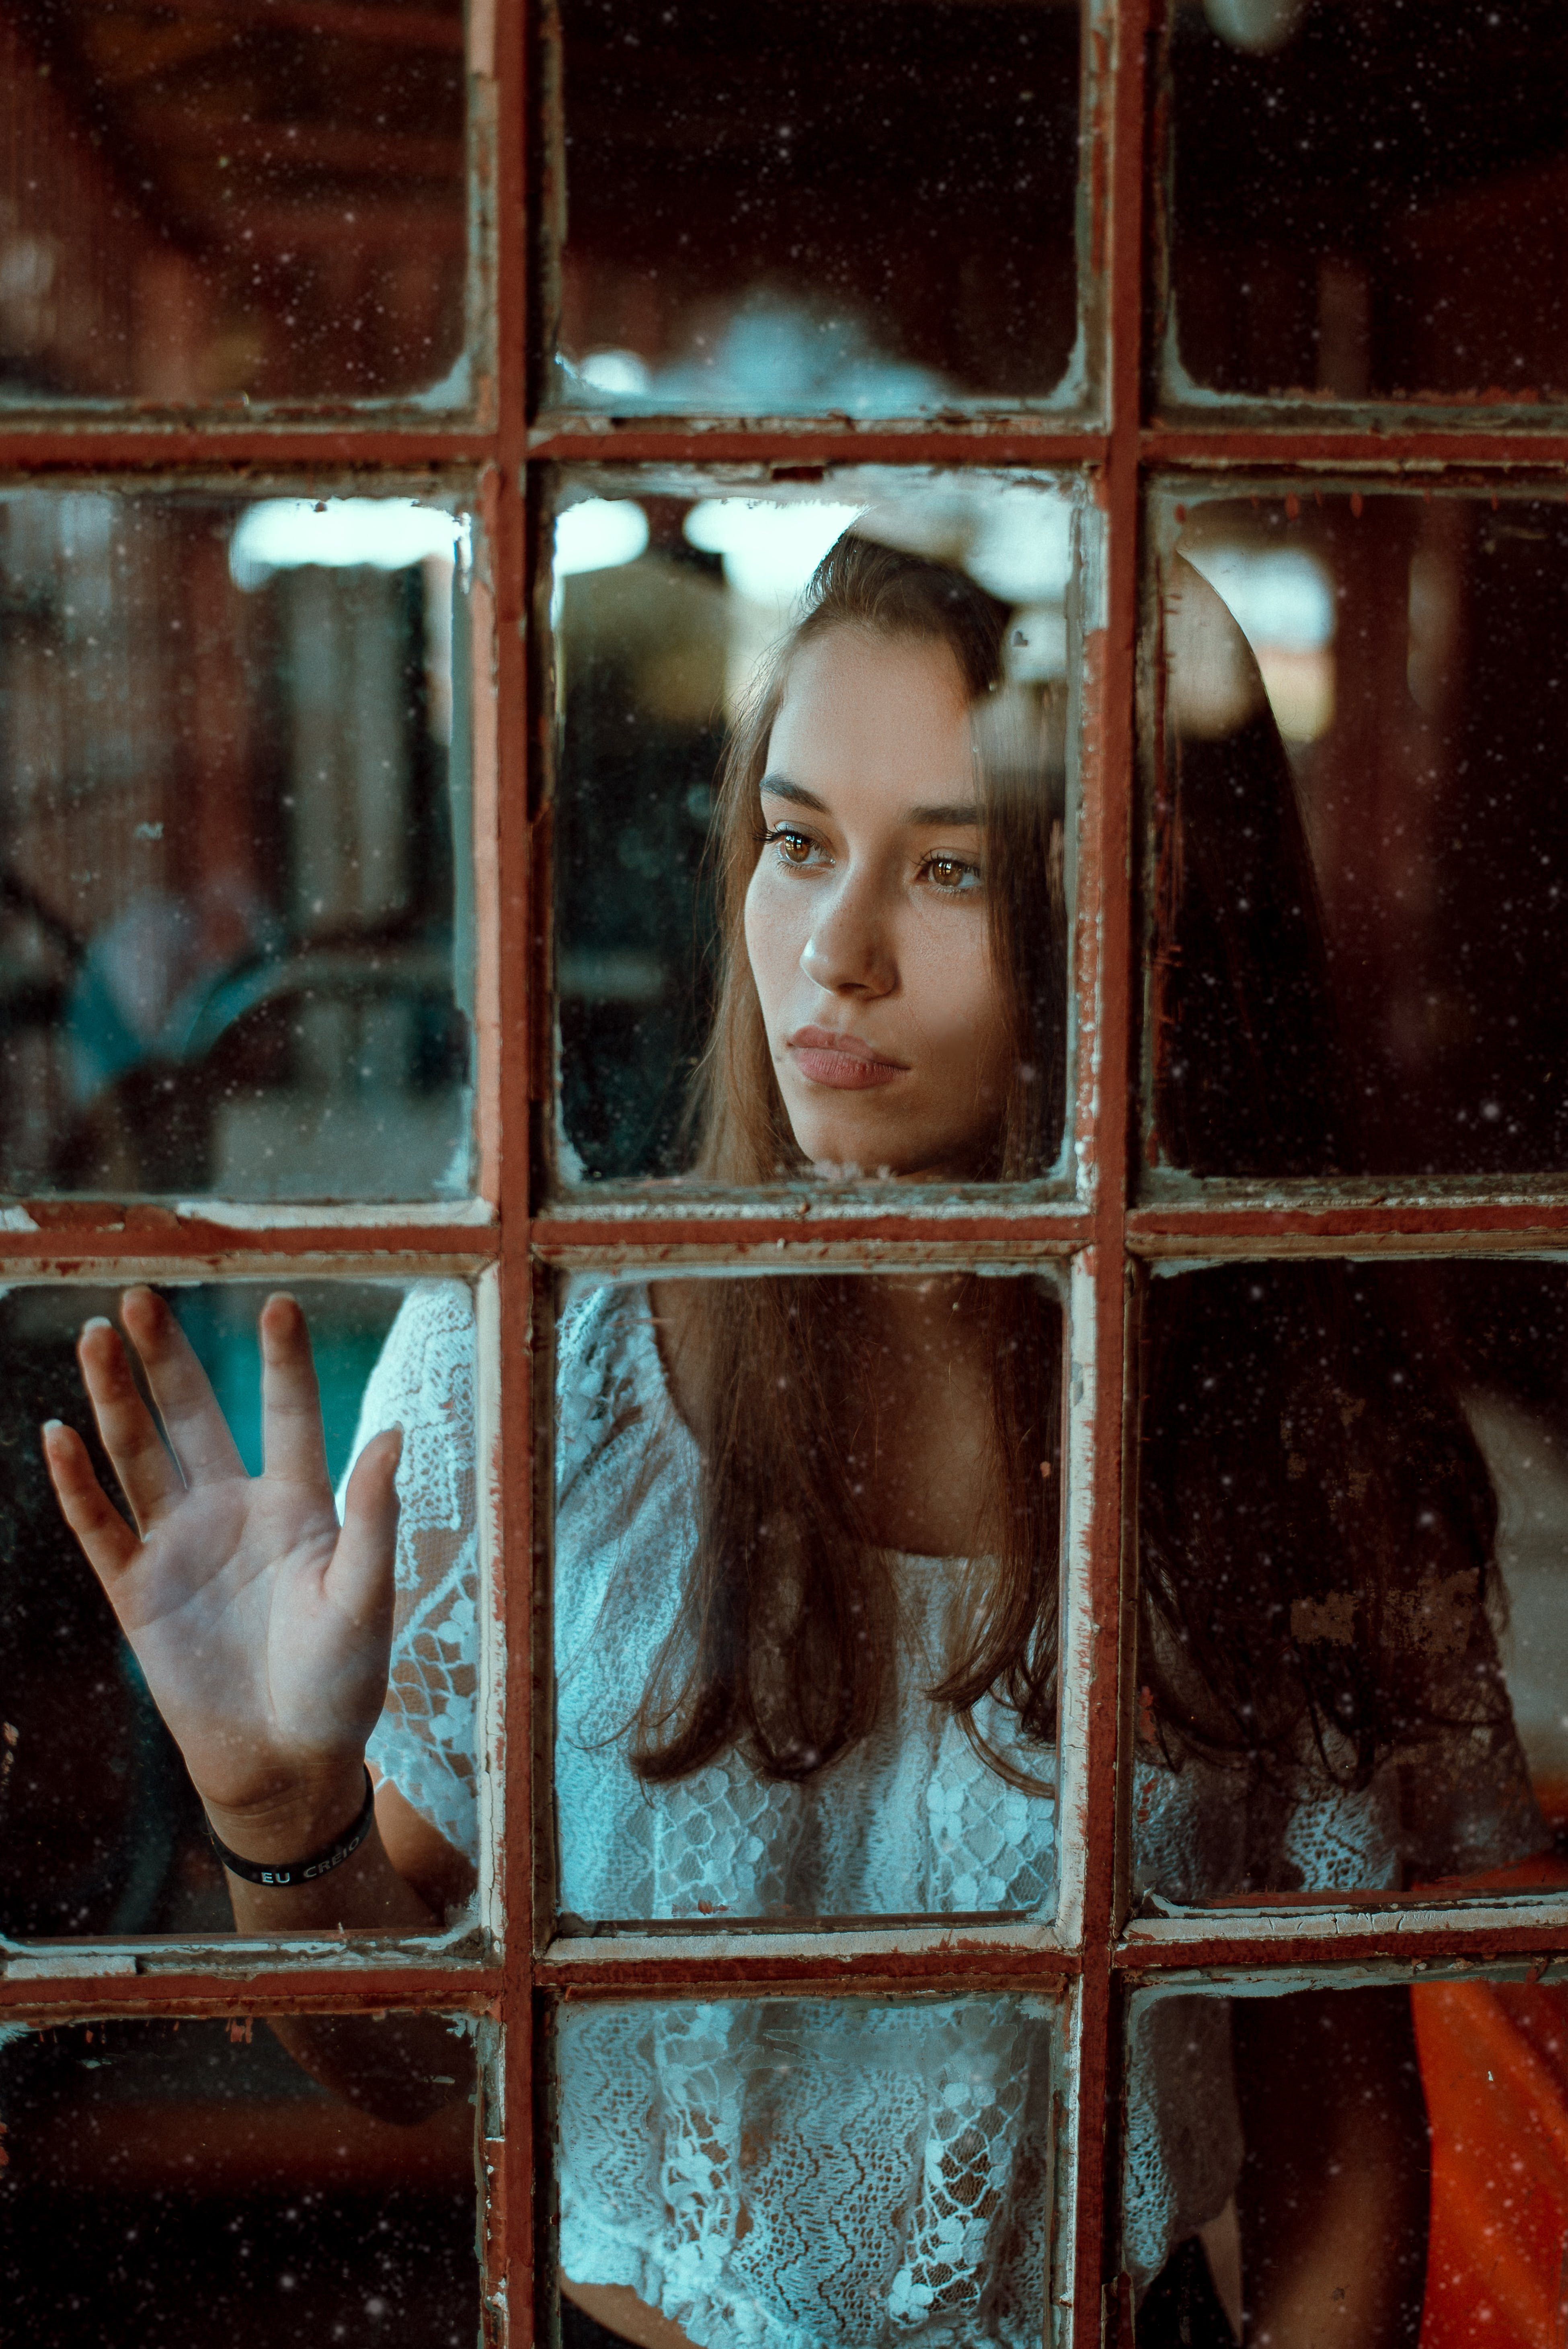 Woman Looking Through the Glass Window